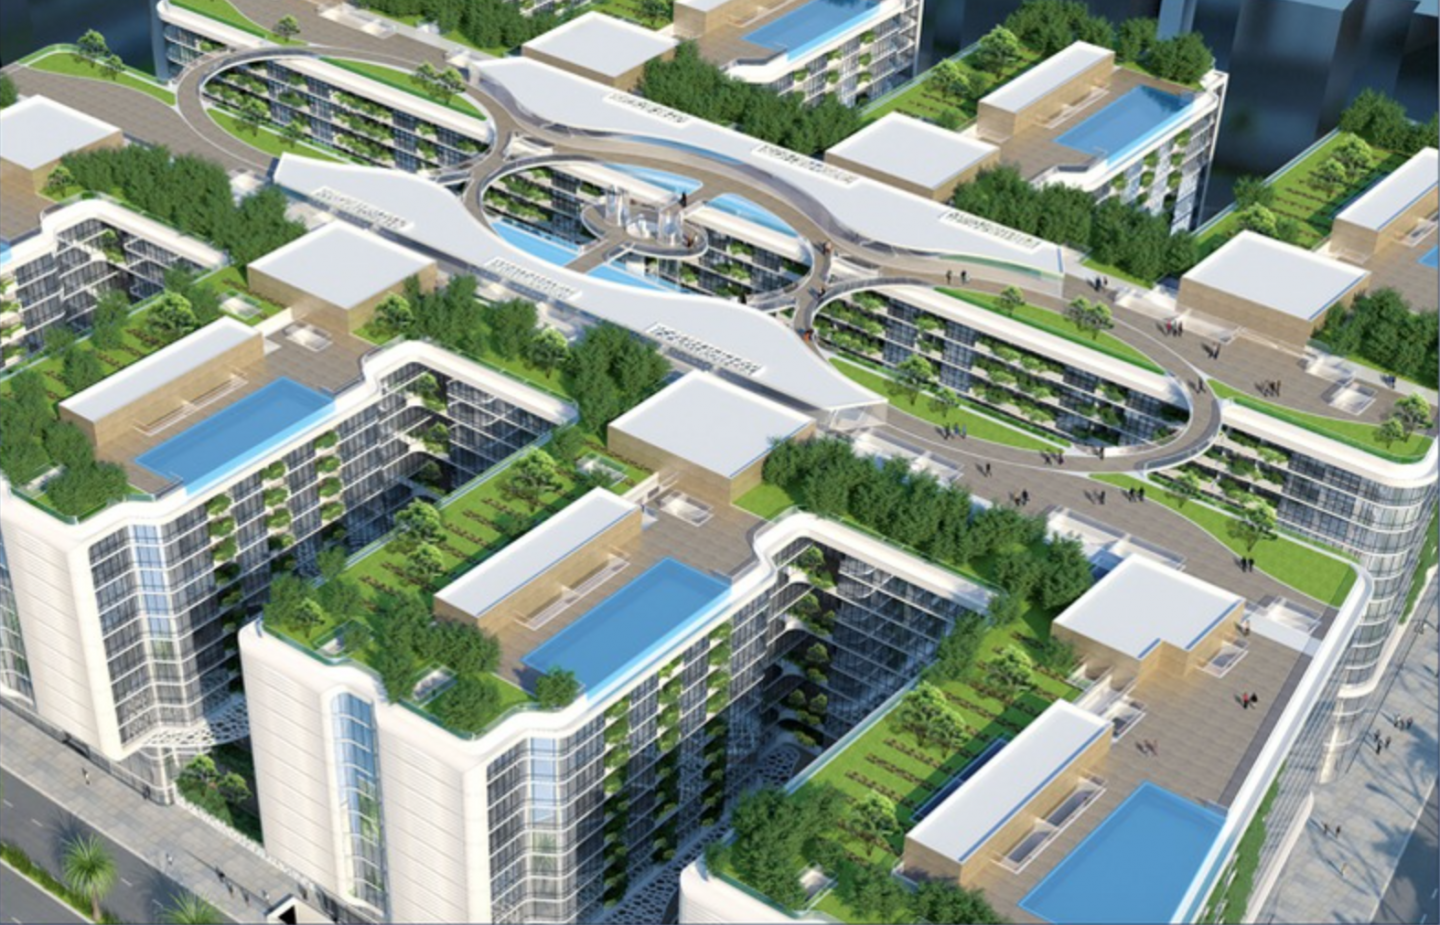 The Gate will be connected ecosystem of luxurious residential, commercial, five-star hotel, and retail spaces that are vertical and sustainable.